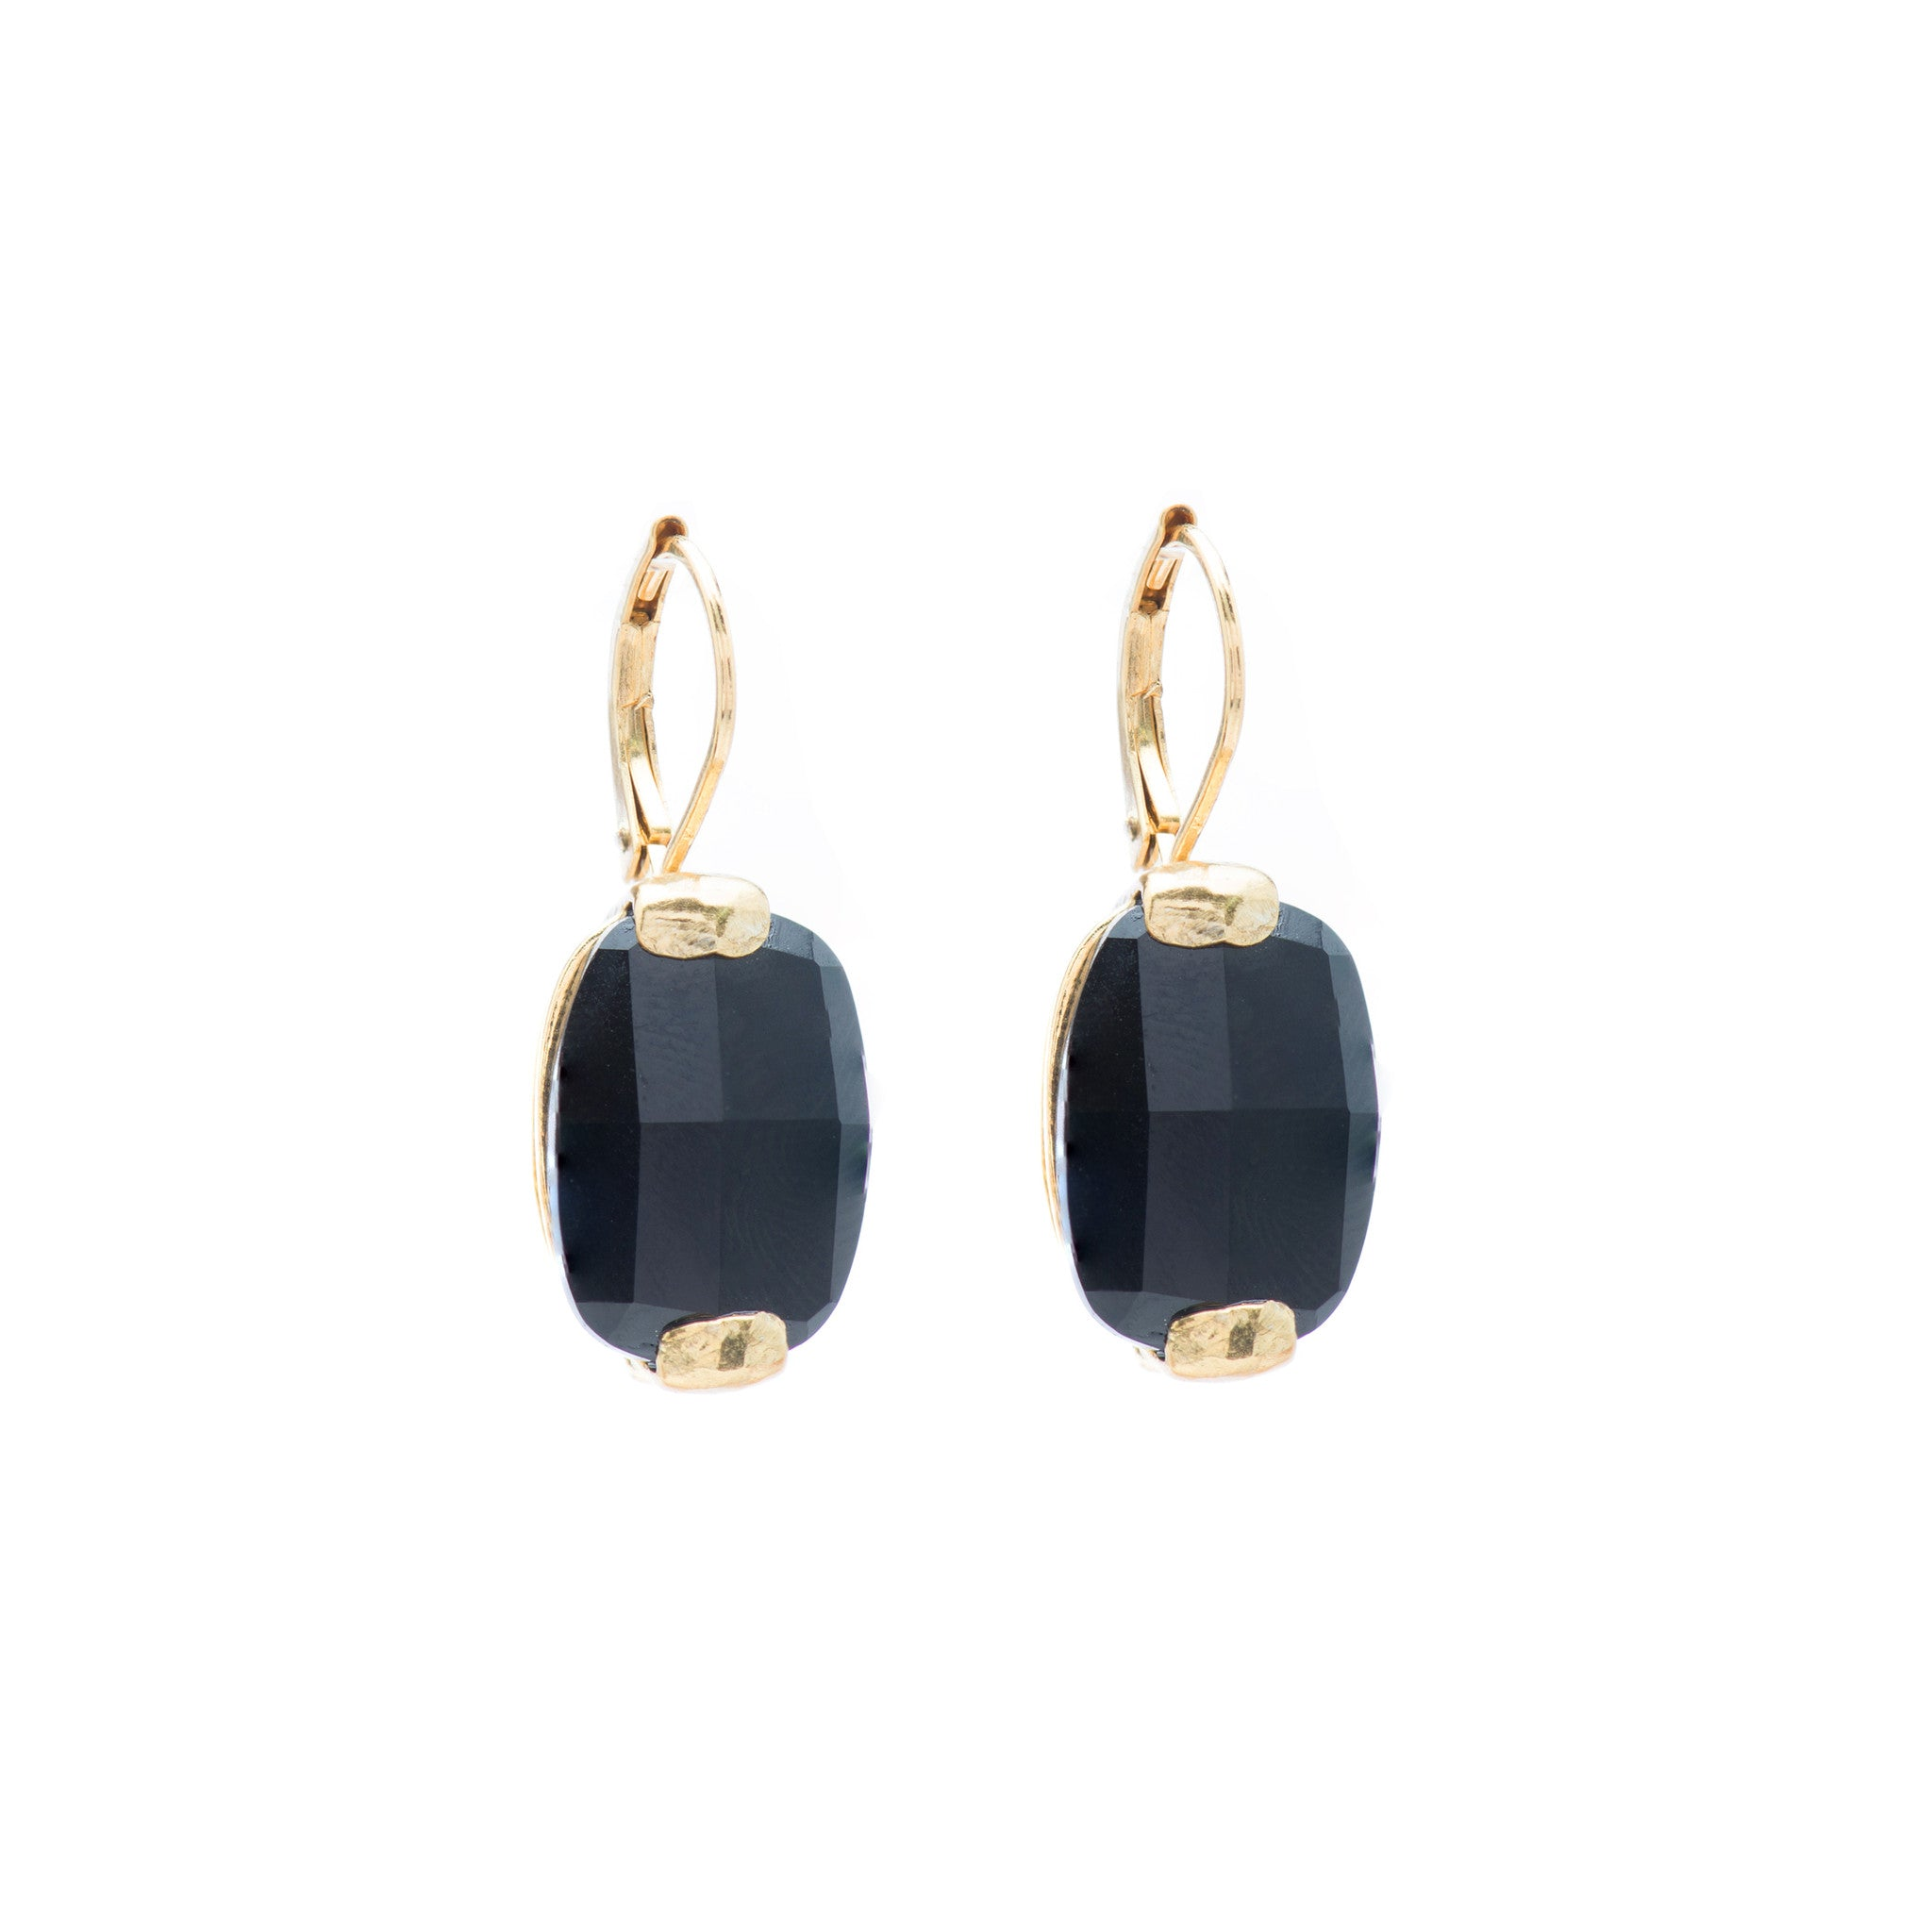 Leverback Earrings with Onyx